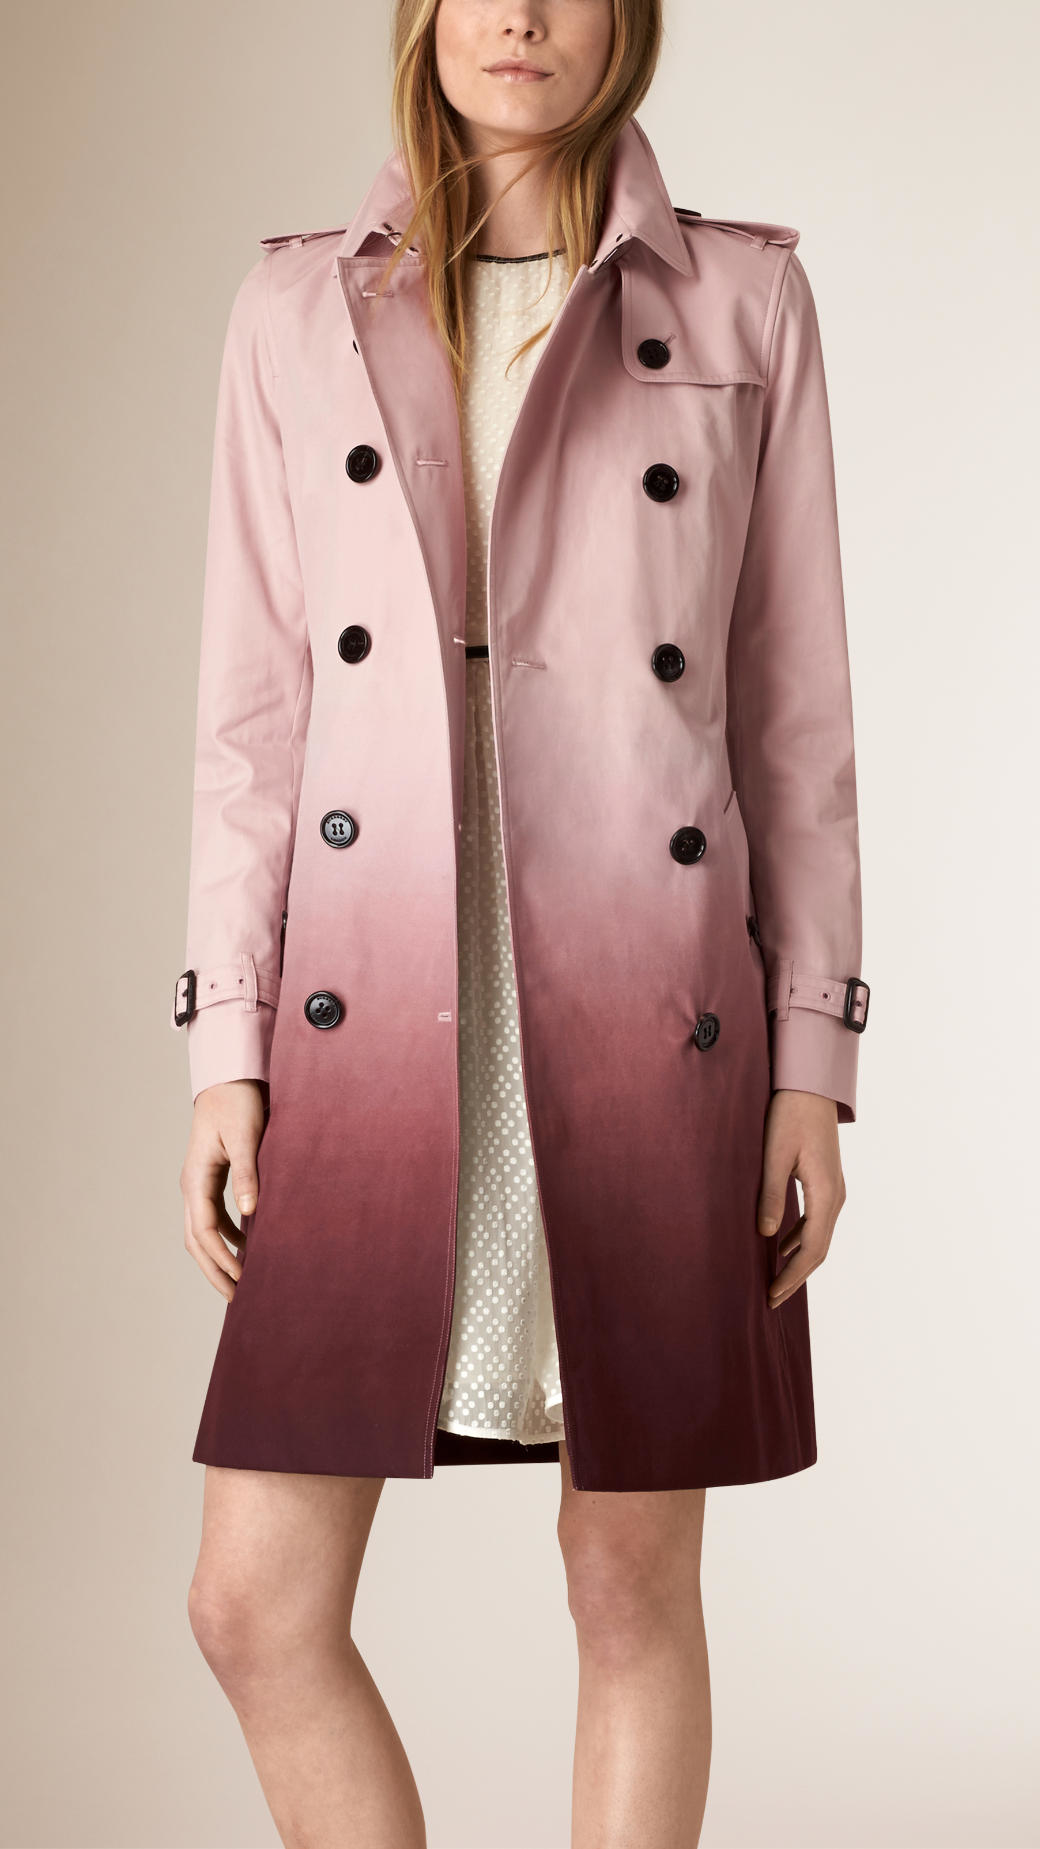 Burberry Degrad Cotton Trench Coat Ice Pink Deep Claret In Blue Lyst Clarette Wedges Coraline Black Gallery